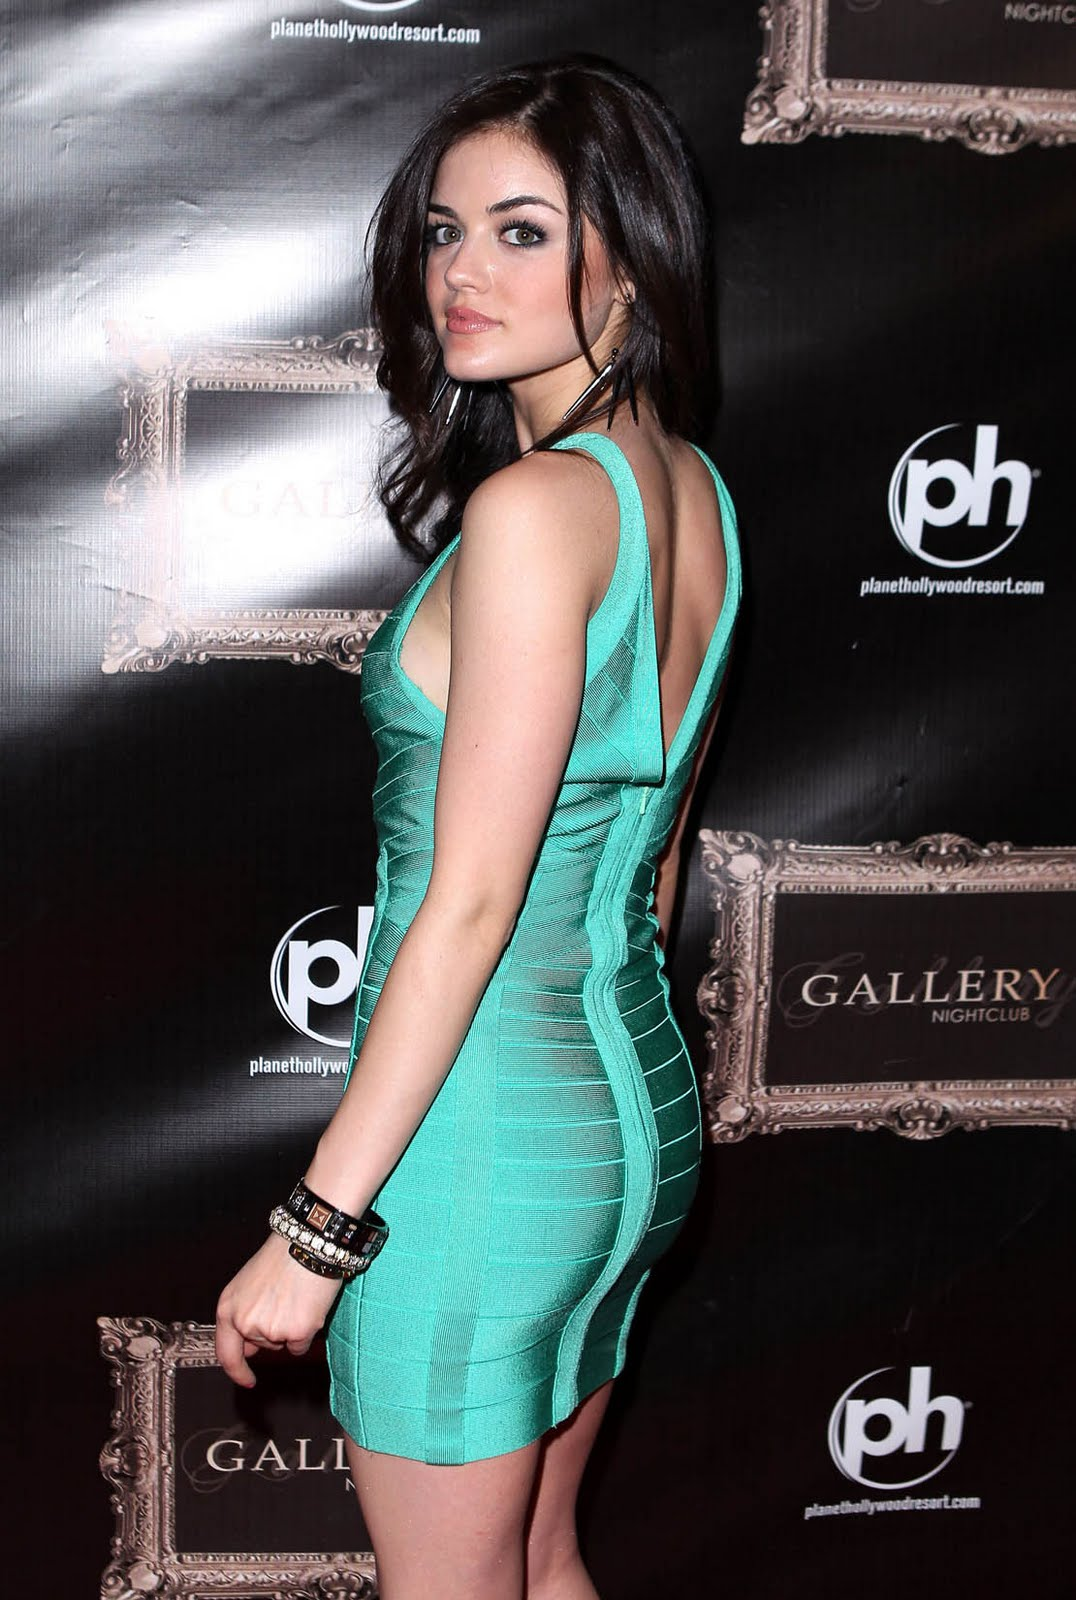 Lucy Hale - Planet Hollywood | Hot Celebs